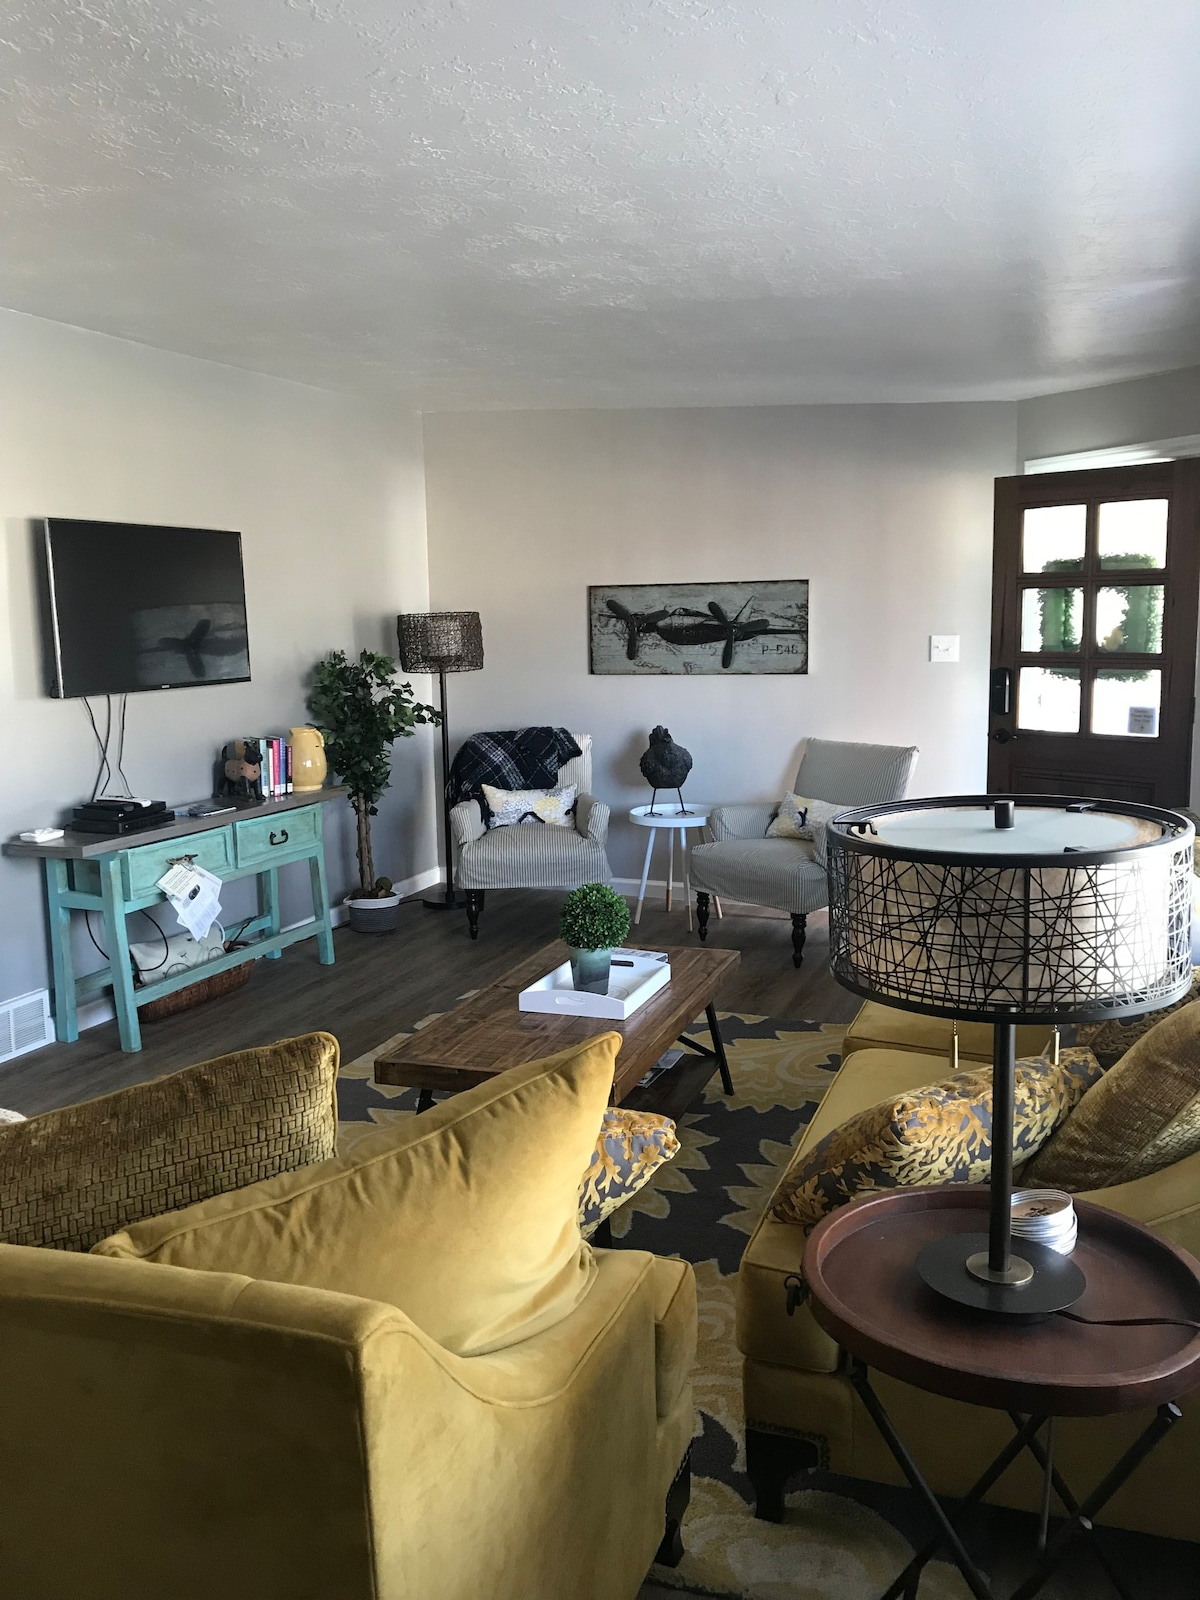 Cottonwood, Holladay Cottonwood 2018 (with Photos): Top 20 Places To Stay  In Cottonwood, Holladay Cottonwood   Vacation Rentals, Vacation Homes    Airbnb ...